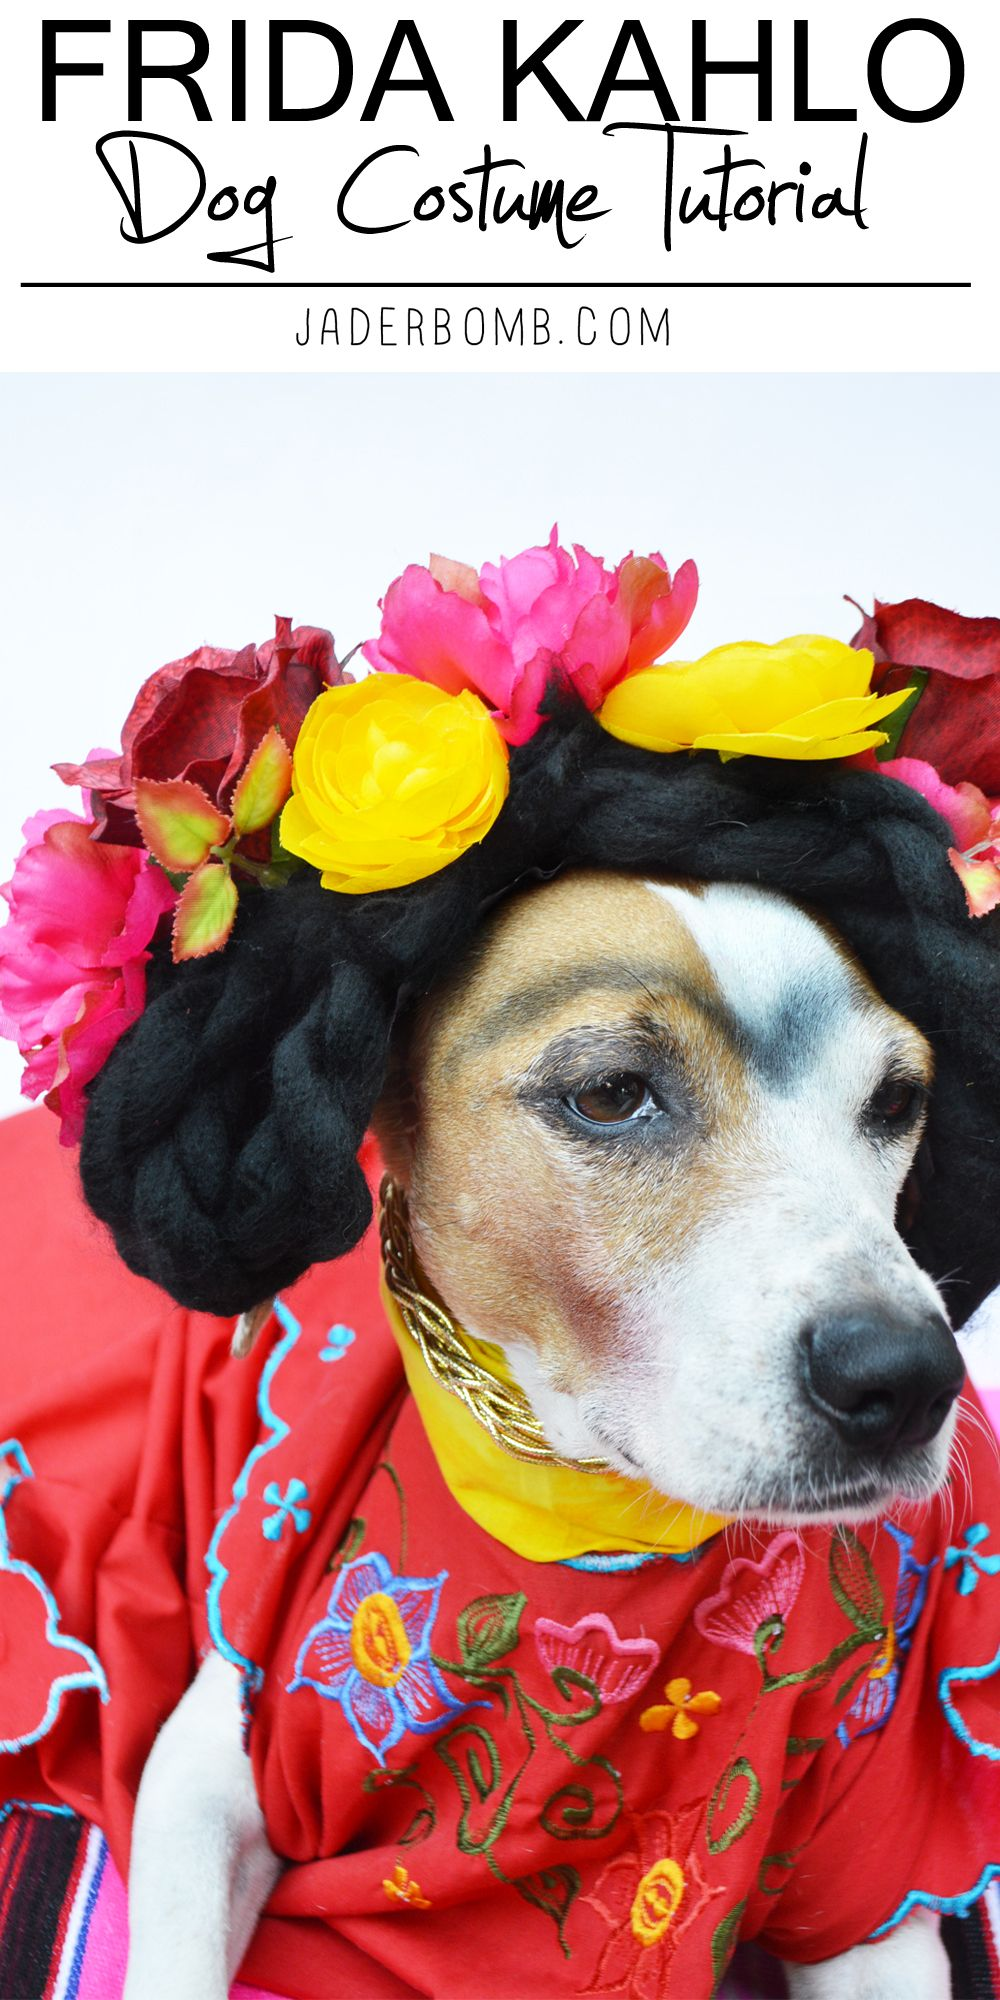 DIY Frida Kahlo dog costume tutorial from MichaelsMakers